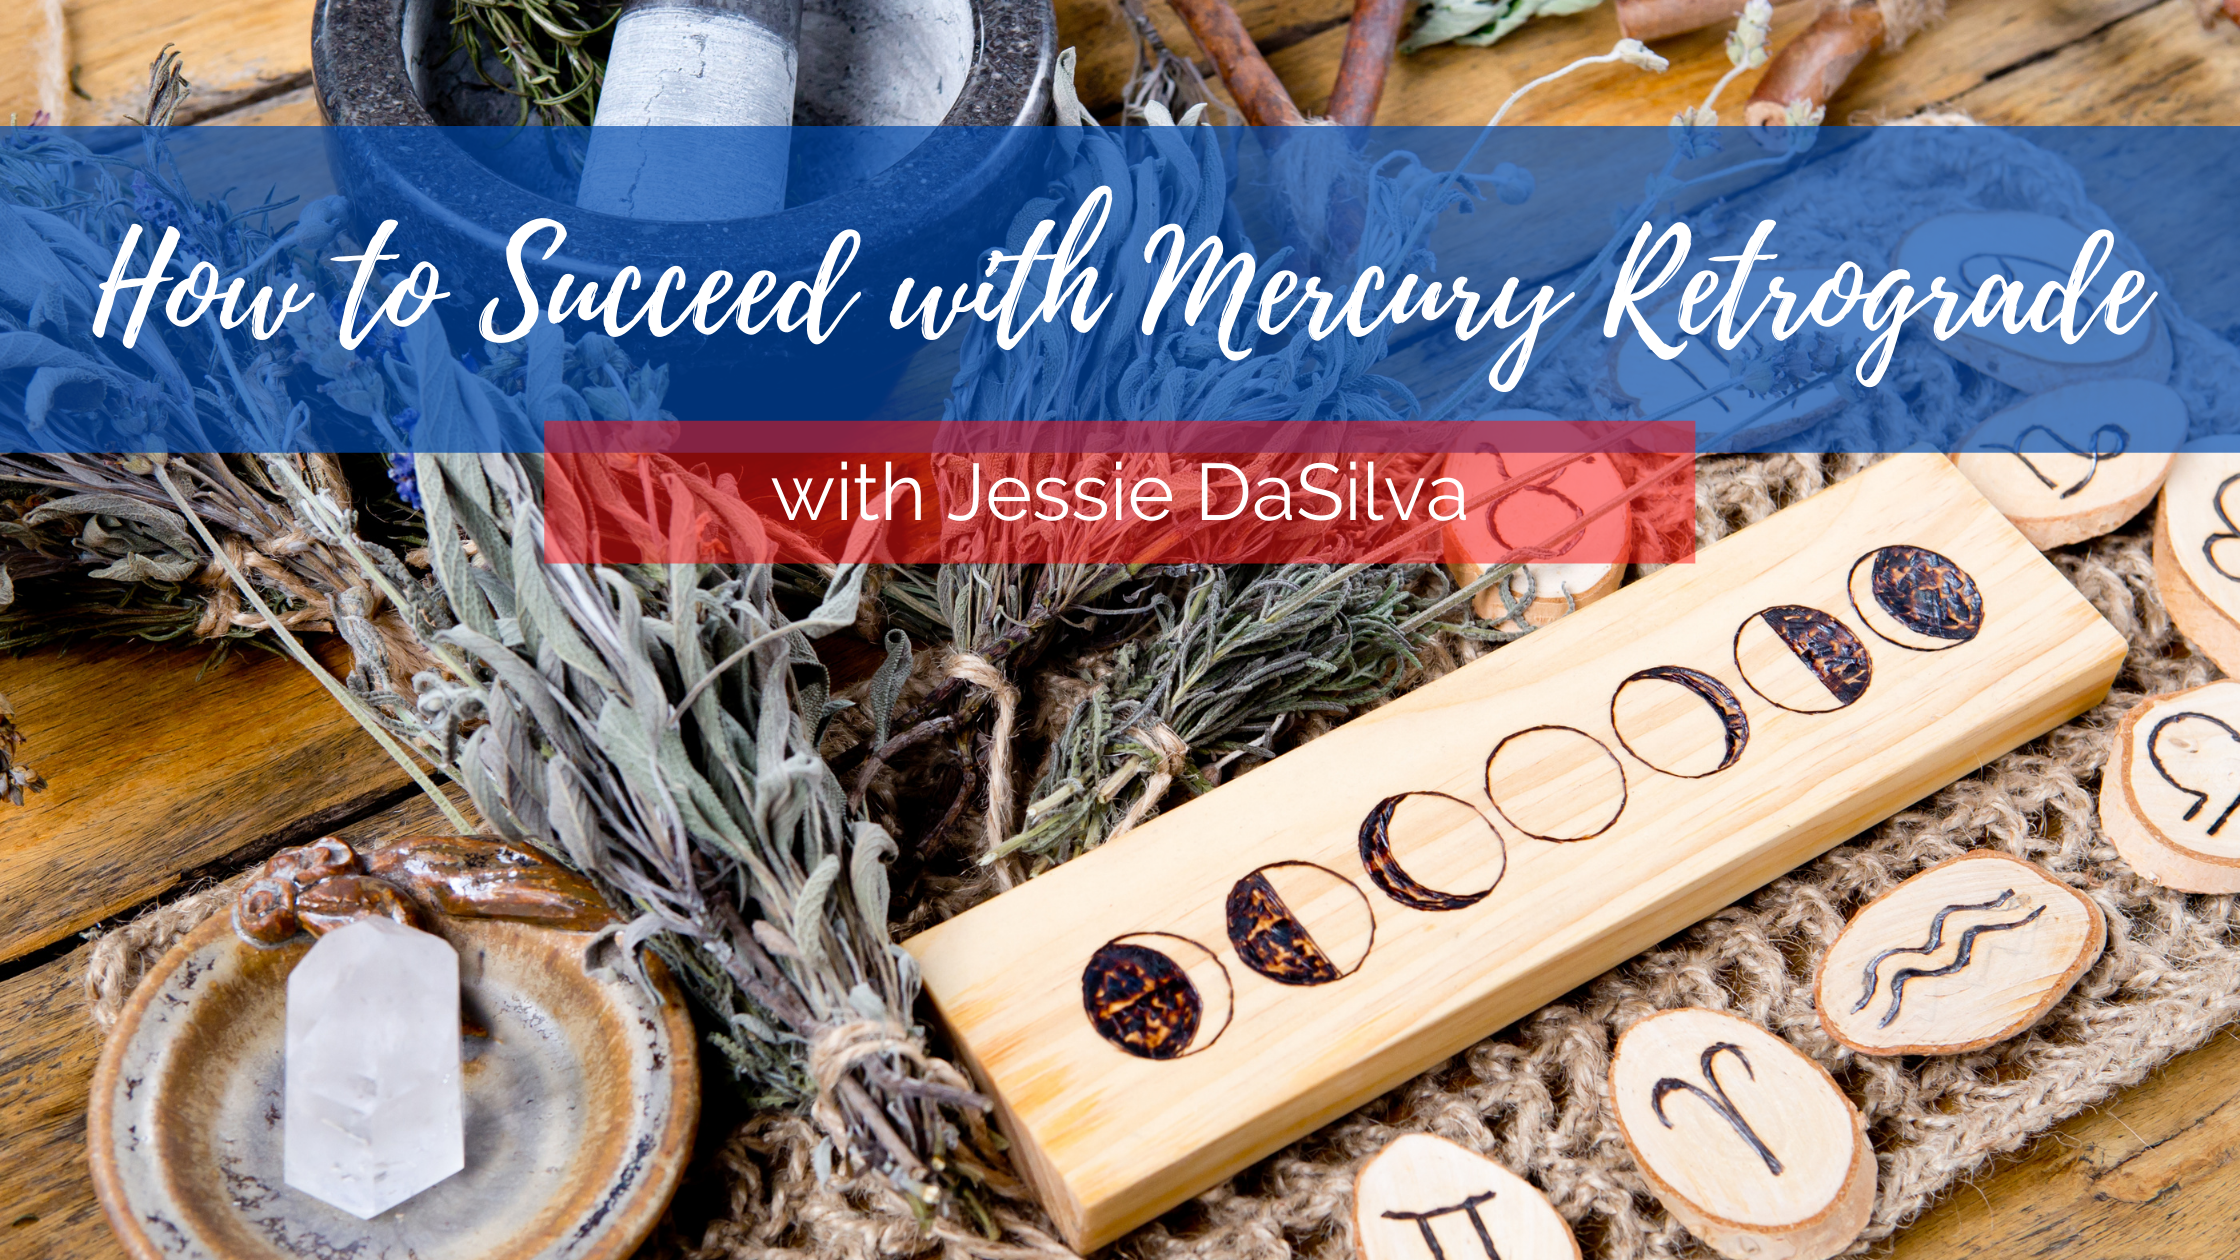 How to succeed with Mercury Retrograde